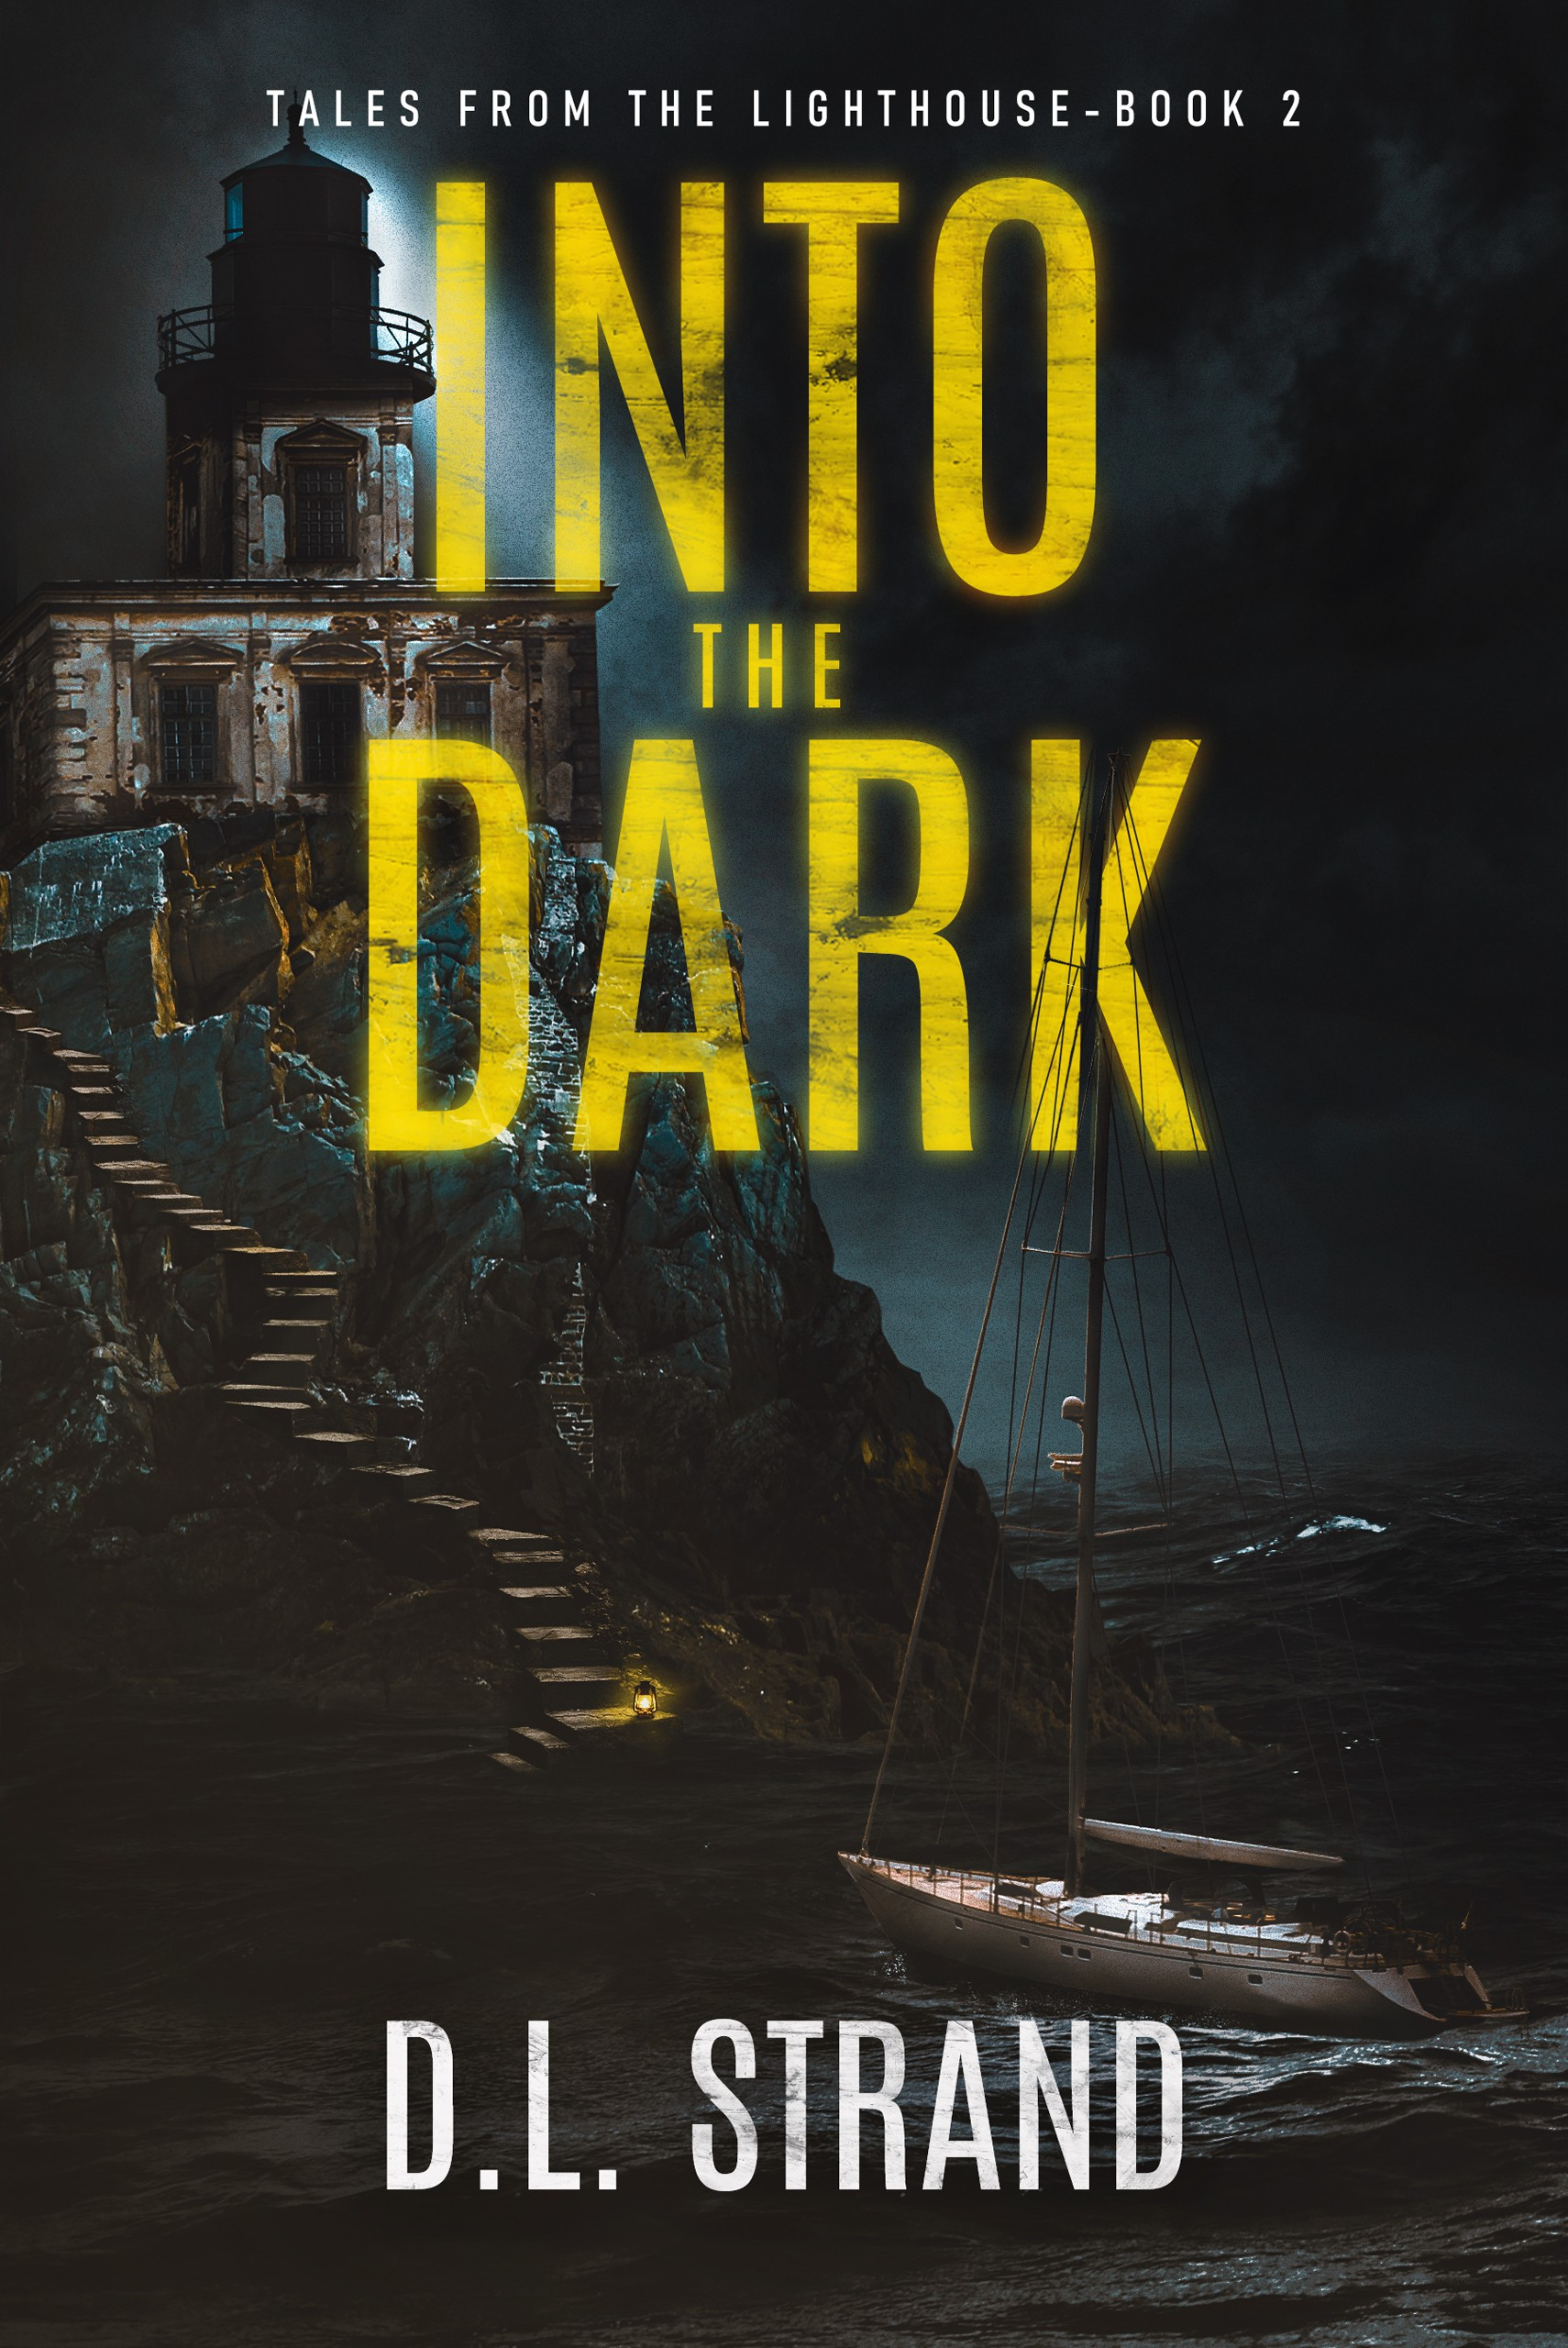 Tales From the Lighthouse Book 2 - Book Cover